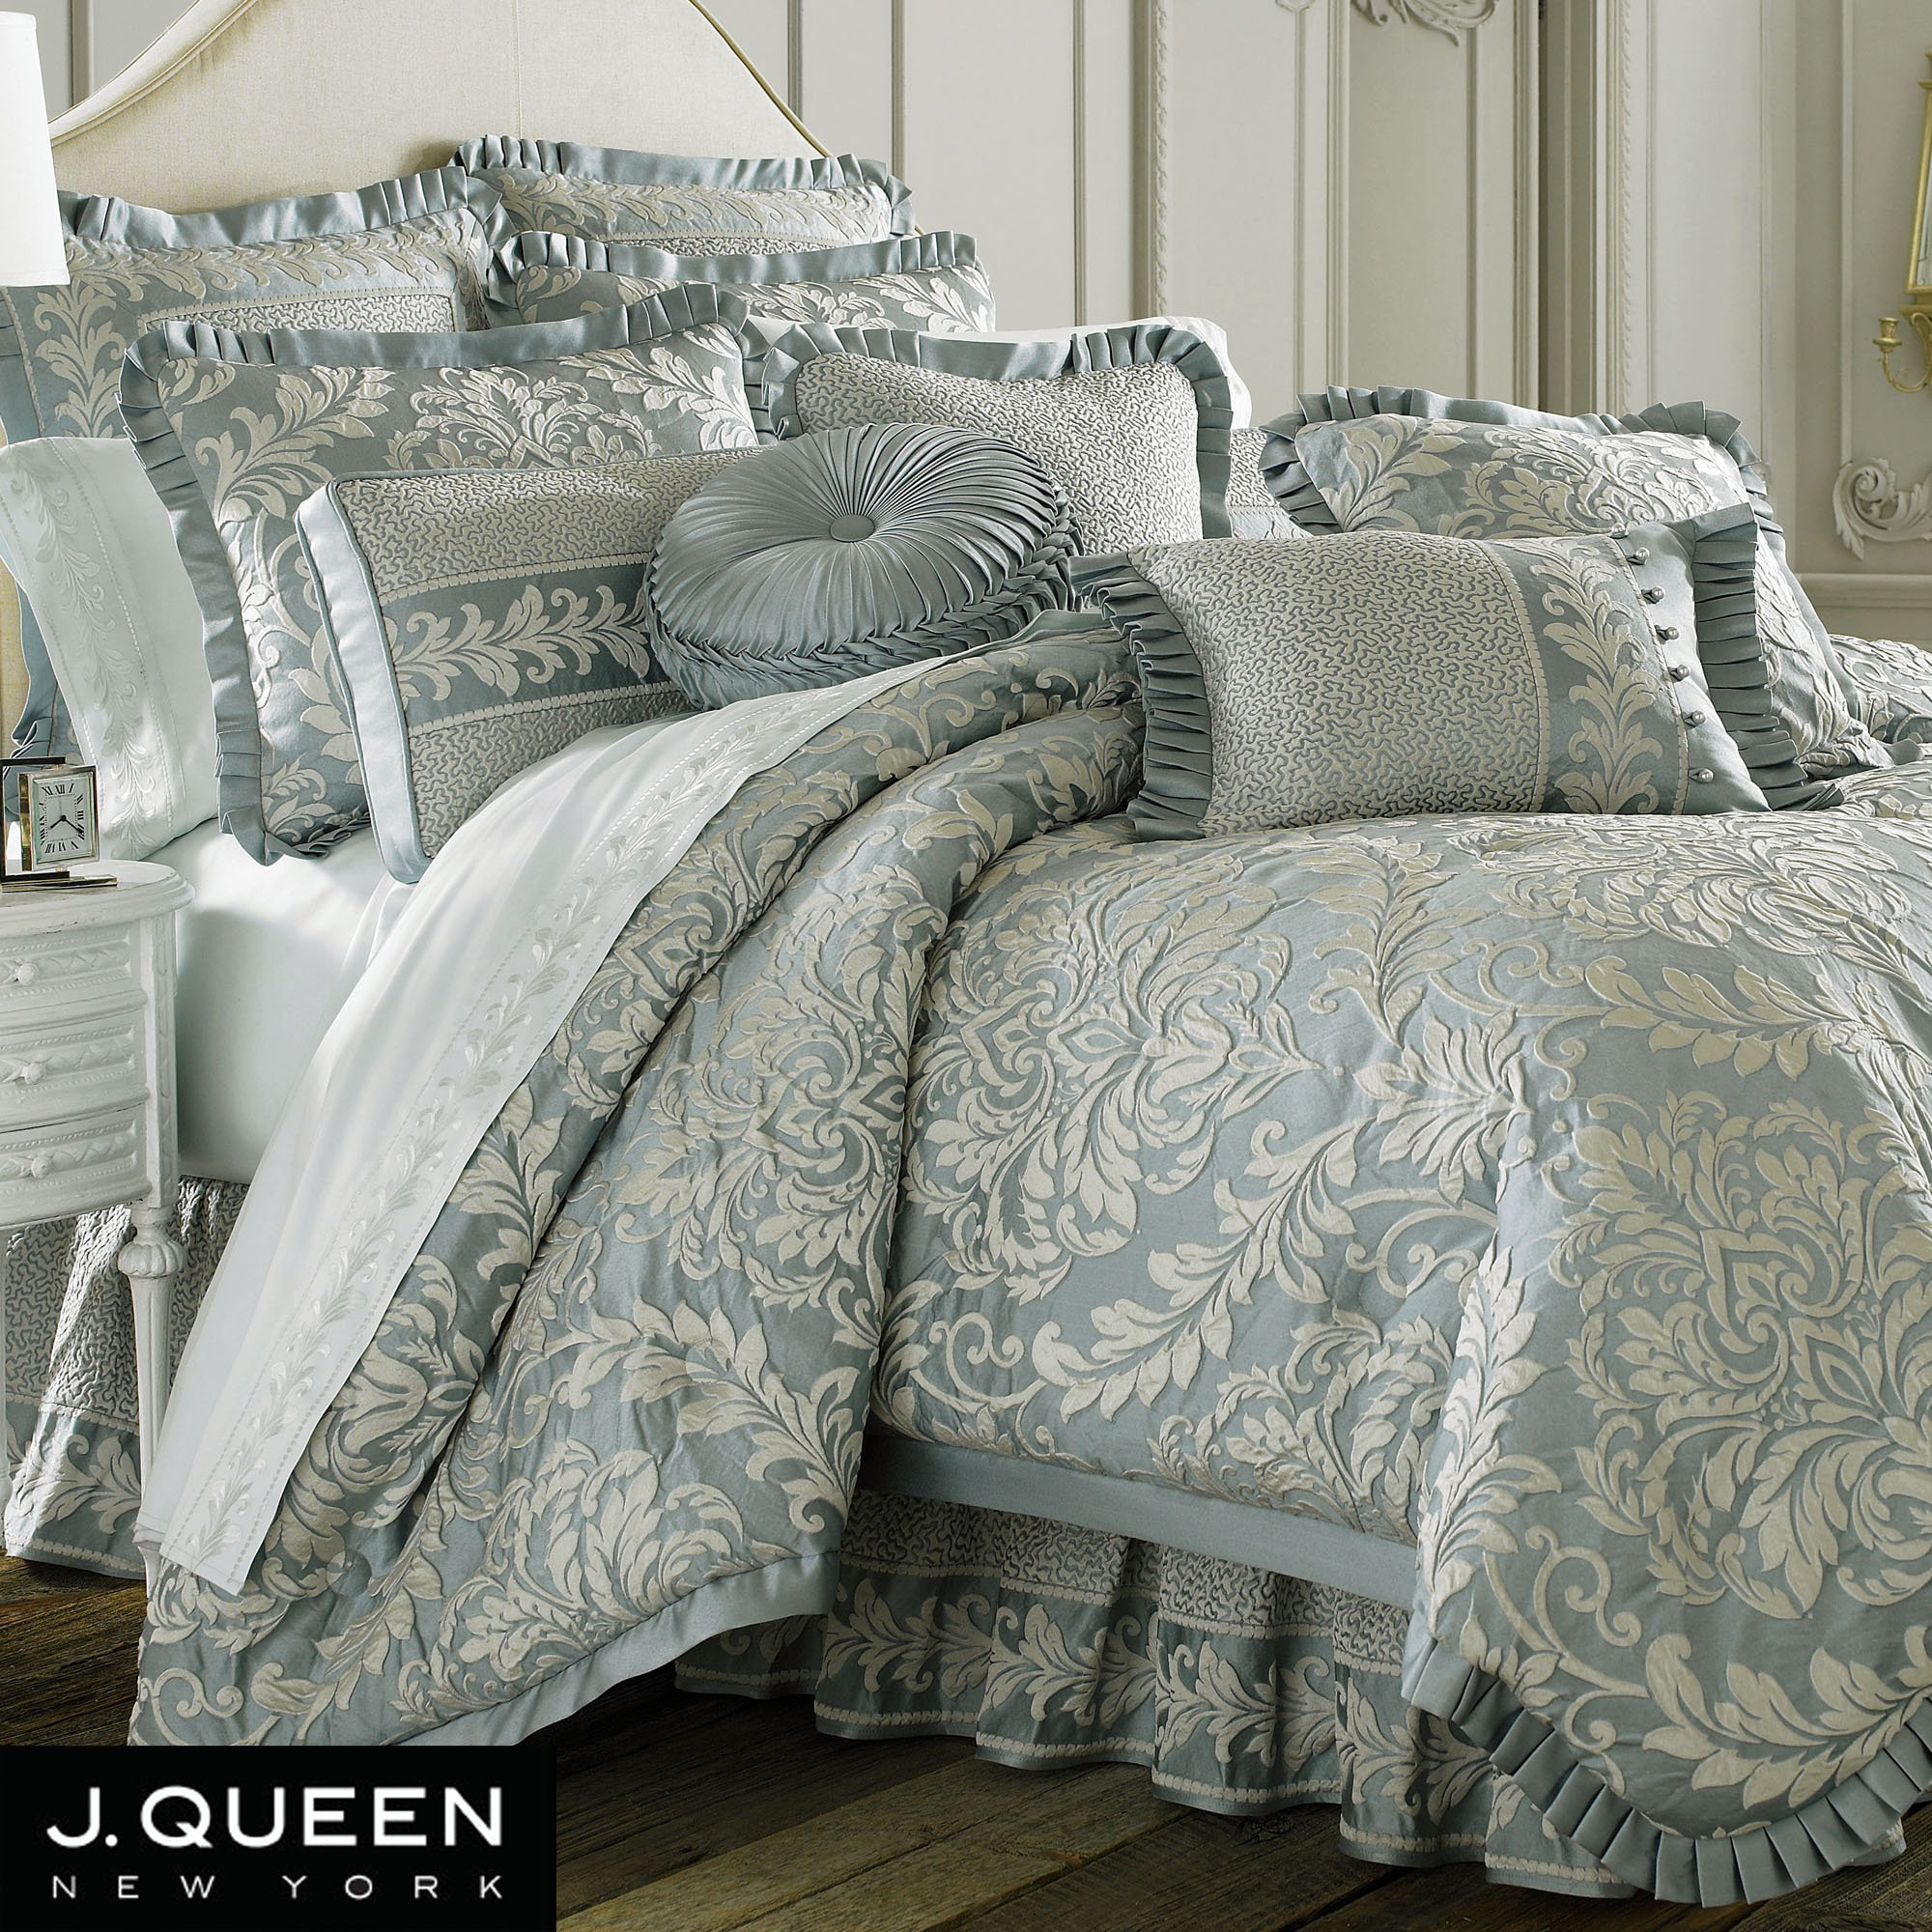 king bedding comforter tag cal designs with sets quilts regarding new oversized queen belk archive